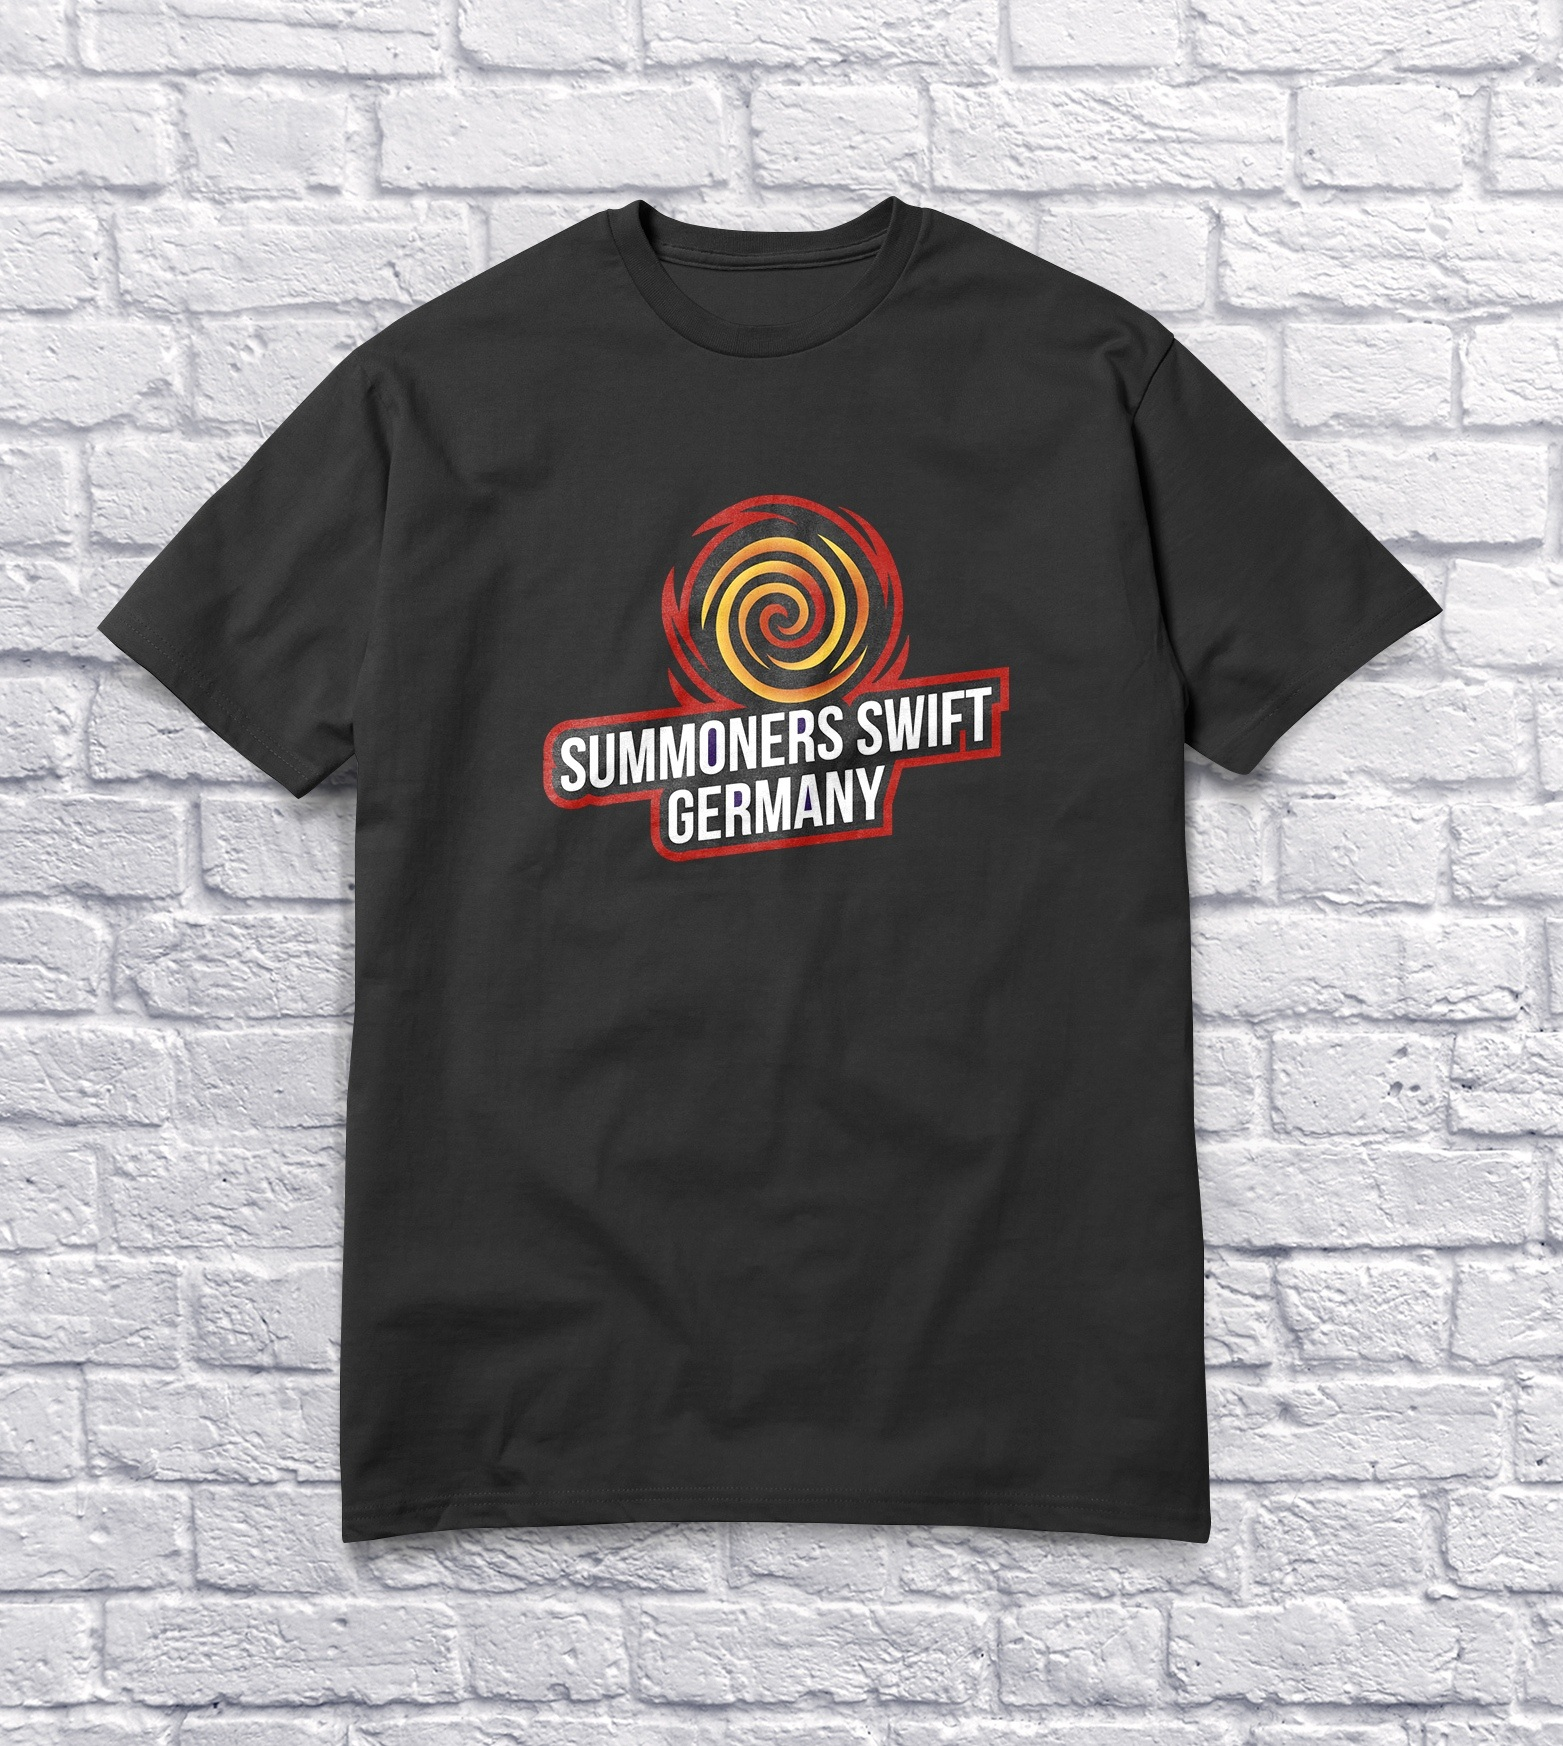 Tshirt Clean Mockup Red » Streamer » Gaming Homepage » Logo Design